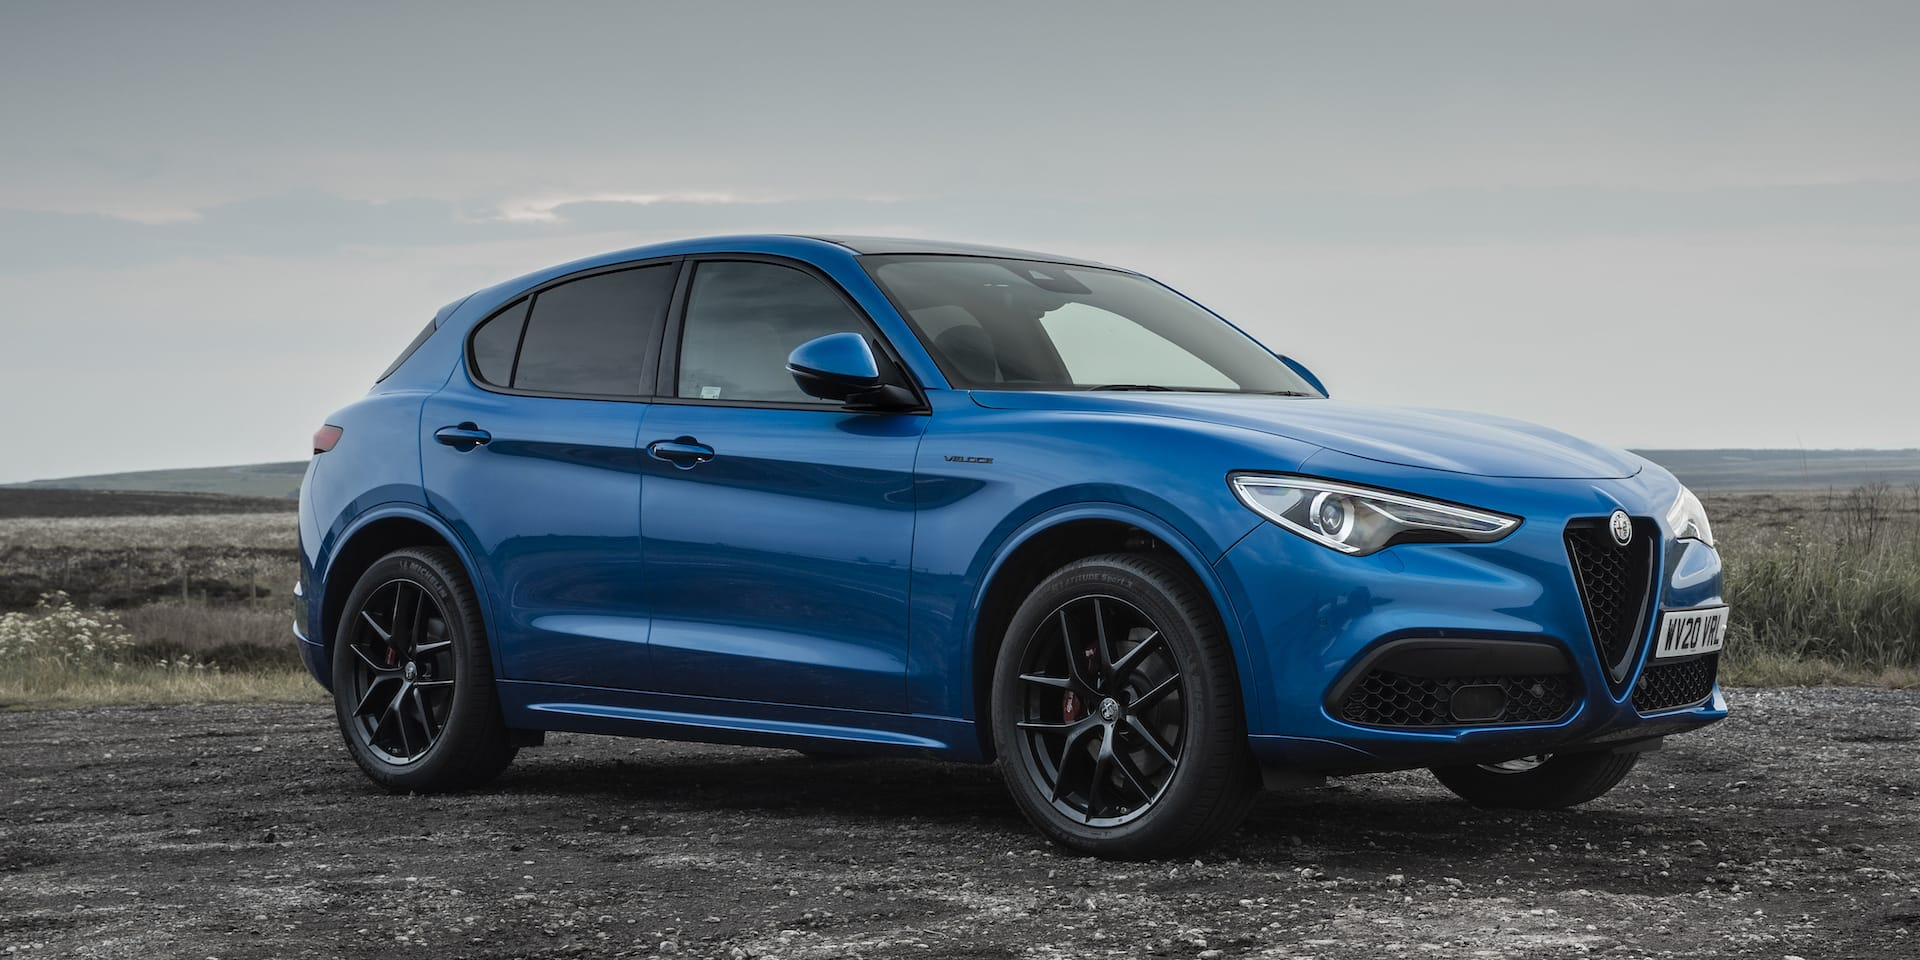 Alfa Romeo Stelvio (2017 onwards) – Expert Rating